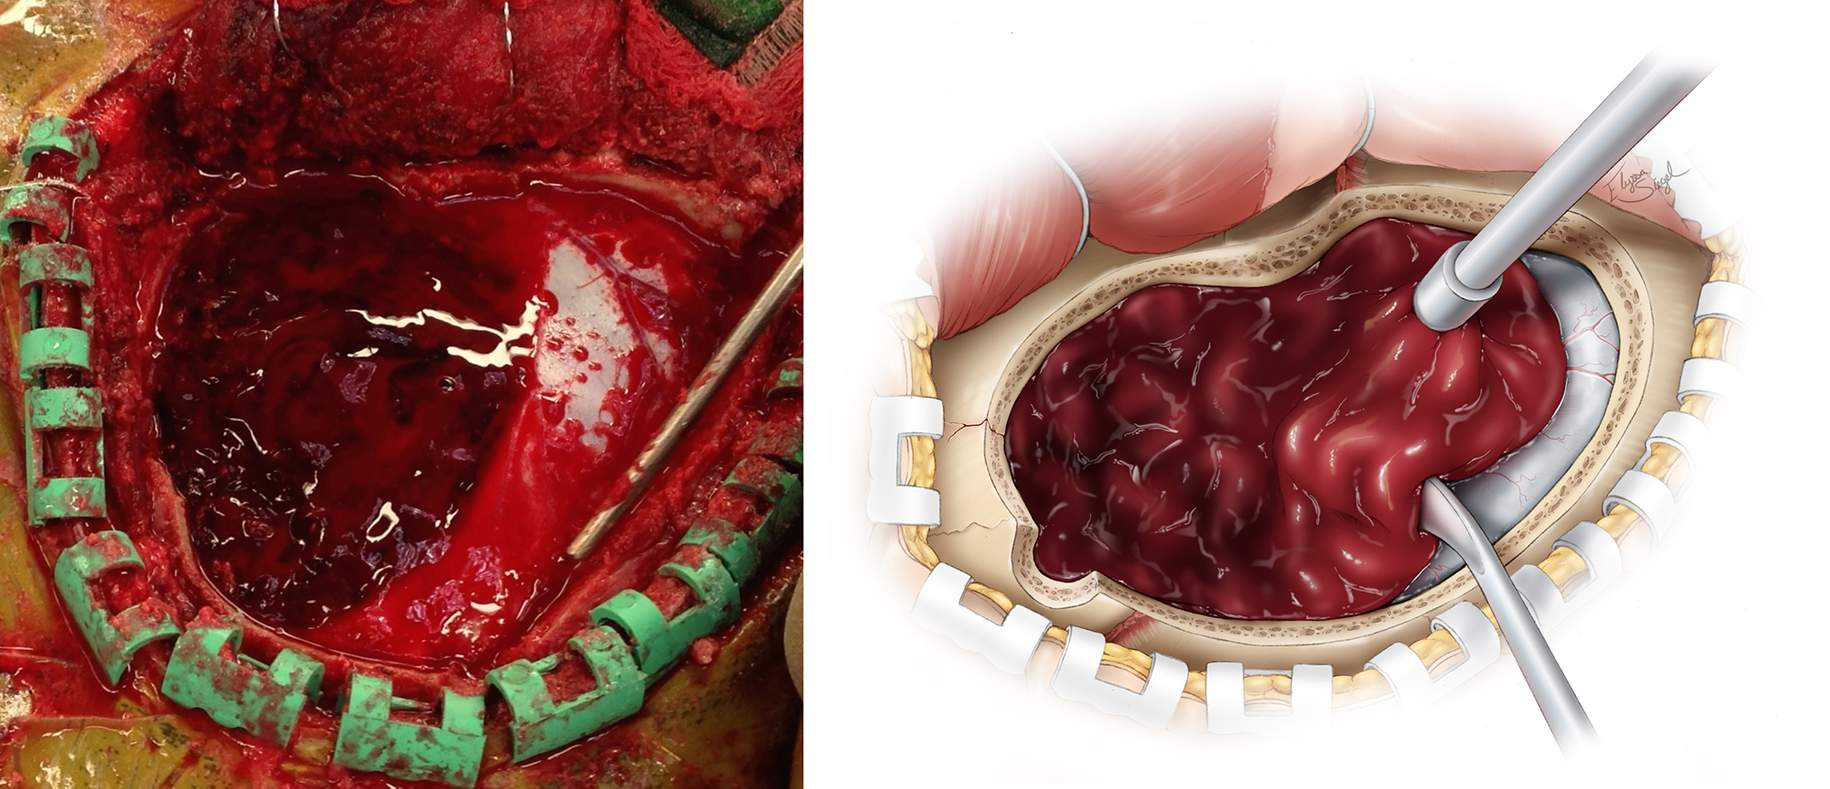 Figure 7: Once the bone flap is elevated a temporal/subtemporal craniectomy is conducted using a large rongeur. After wide exposure of the hematoma, the clot is manually mobilized and evacuated using irrigation and suction. The hematoma may have expanded since the time of the scan, and meticulous inspection of the surrounding normal epidural space is required. All actively bleeding vessels, including the middle meningeal artery branches, should be coagulated using bipolar electrocautery.